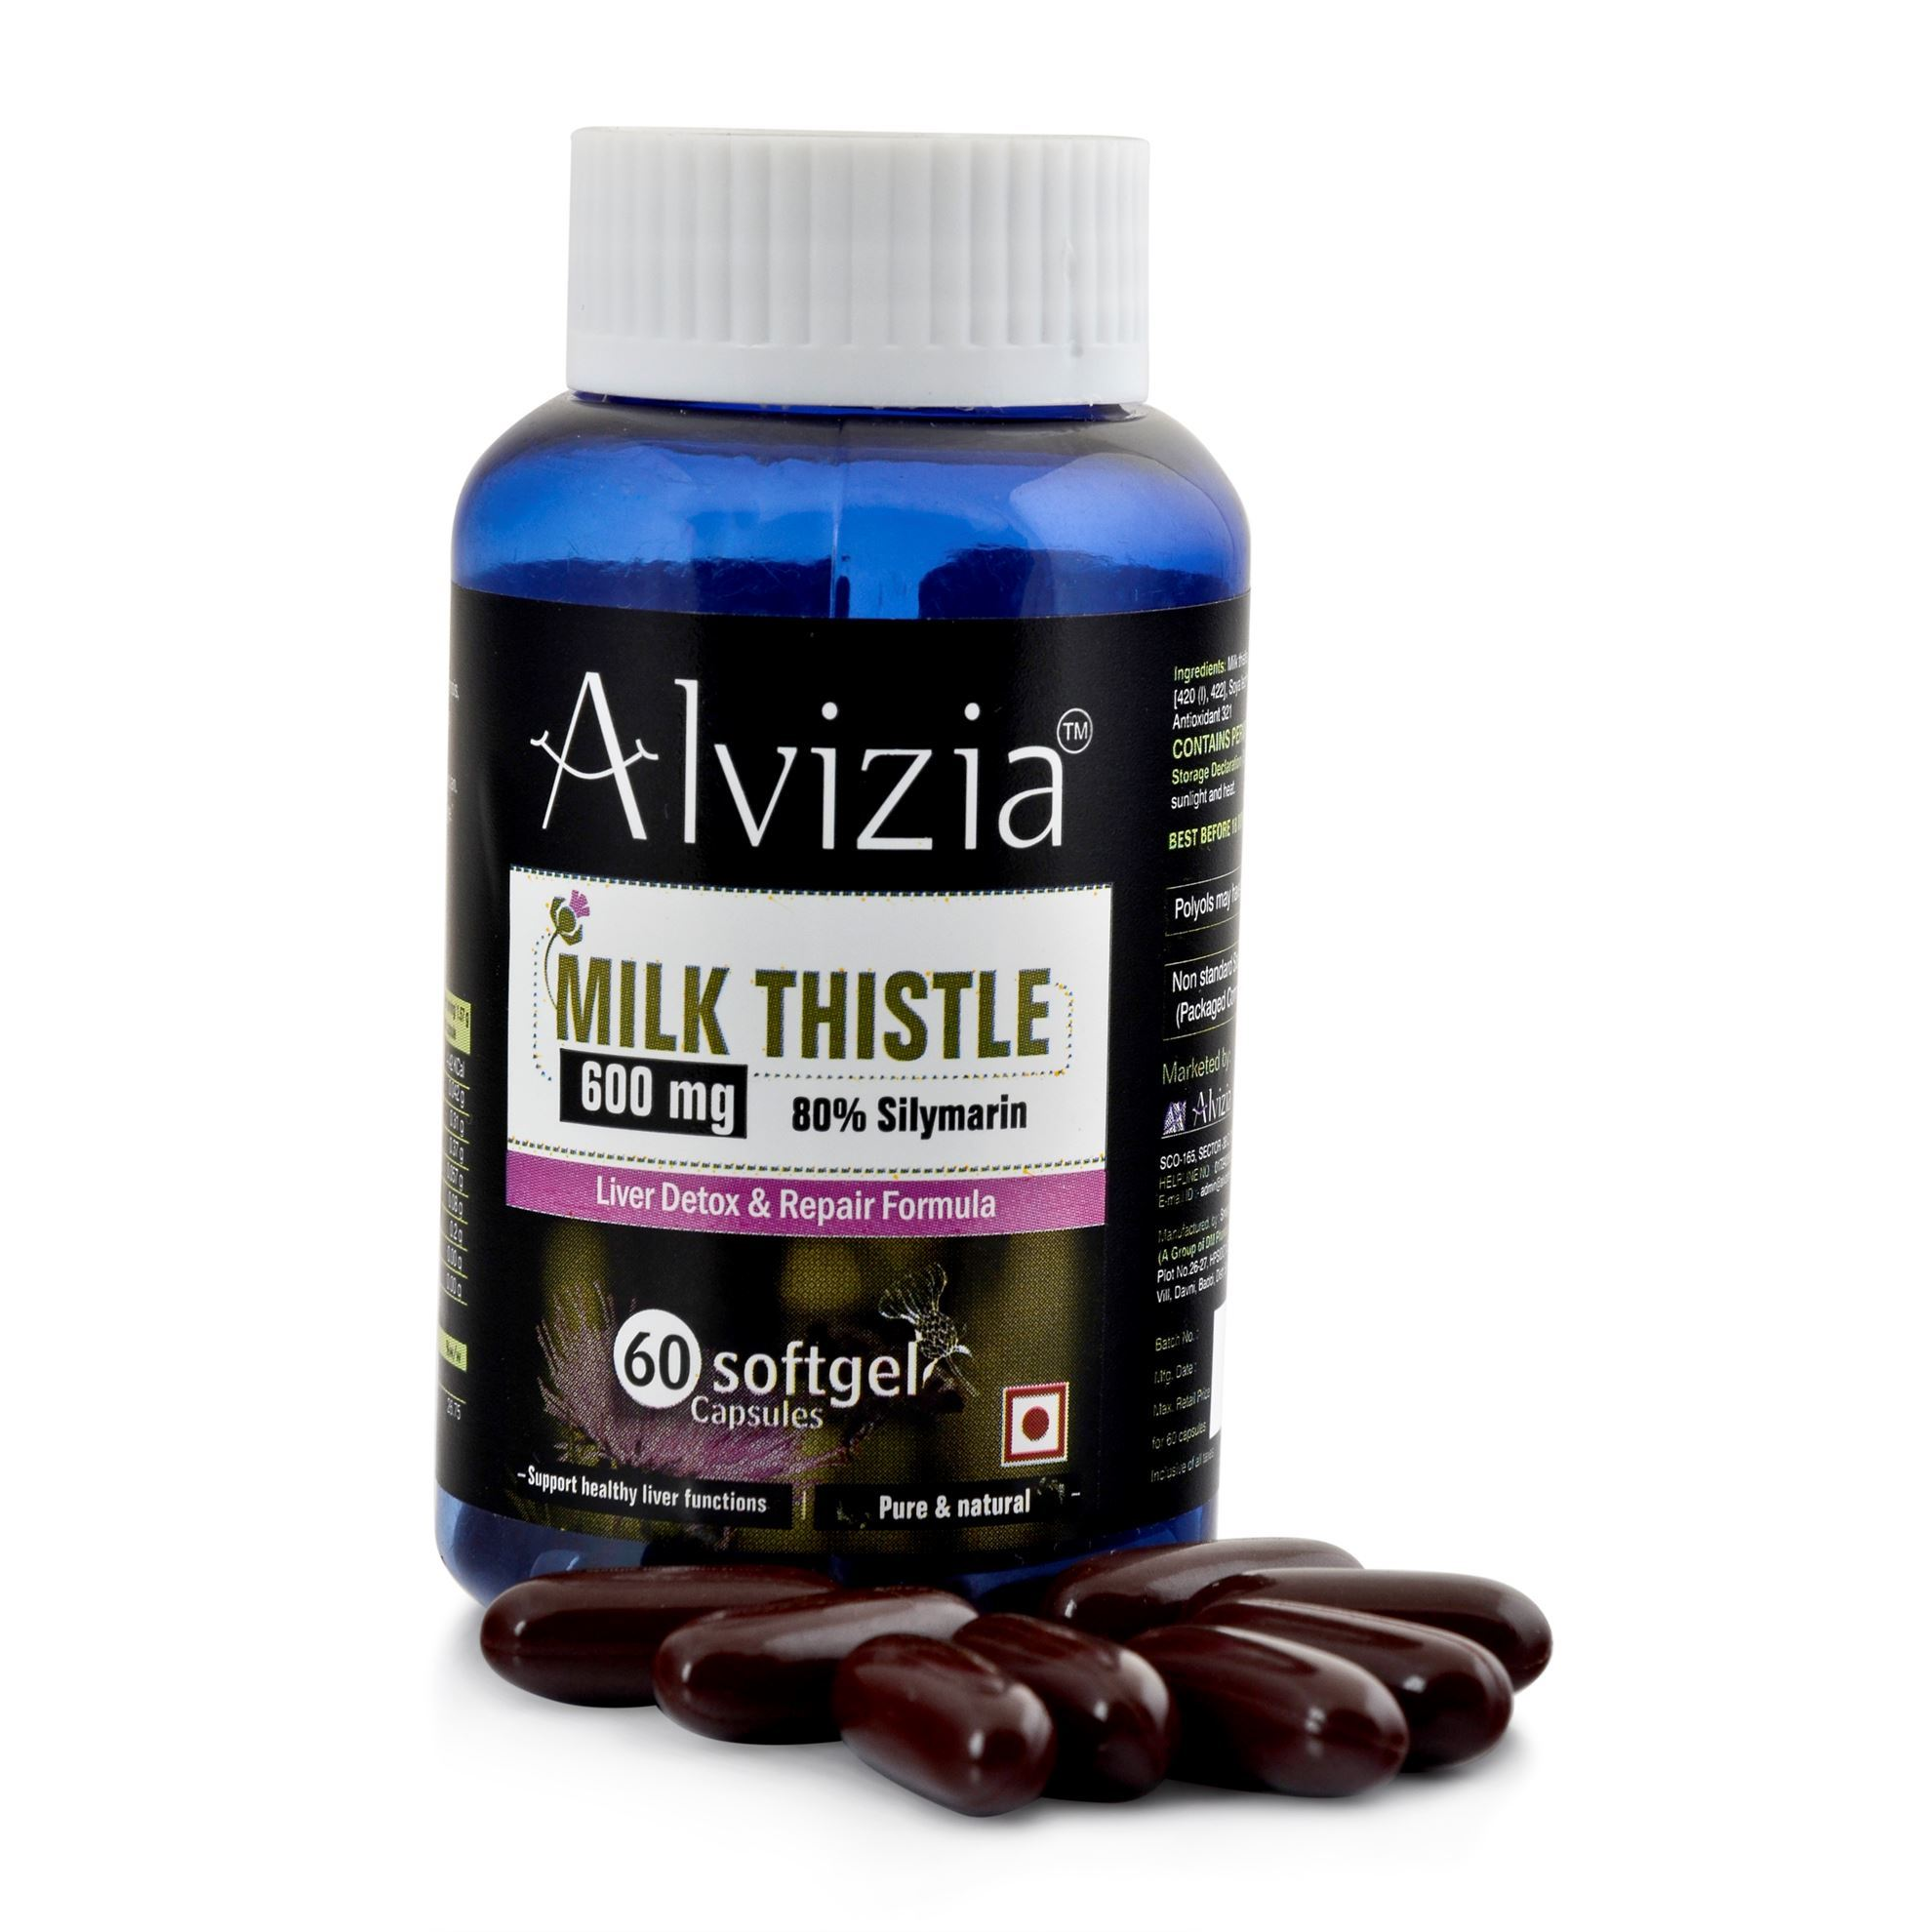 Picture of Alvizia Milk Thistle 600 mg Softgel 60 Capsules